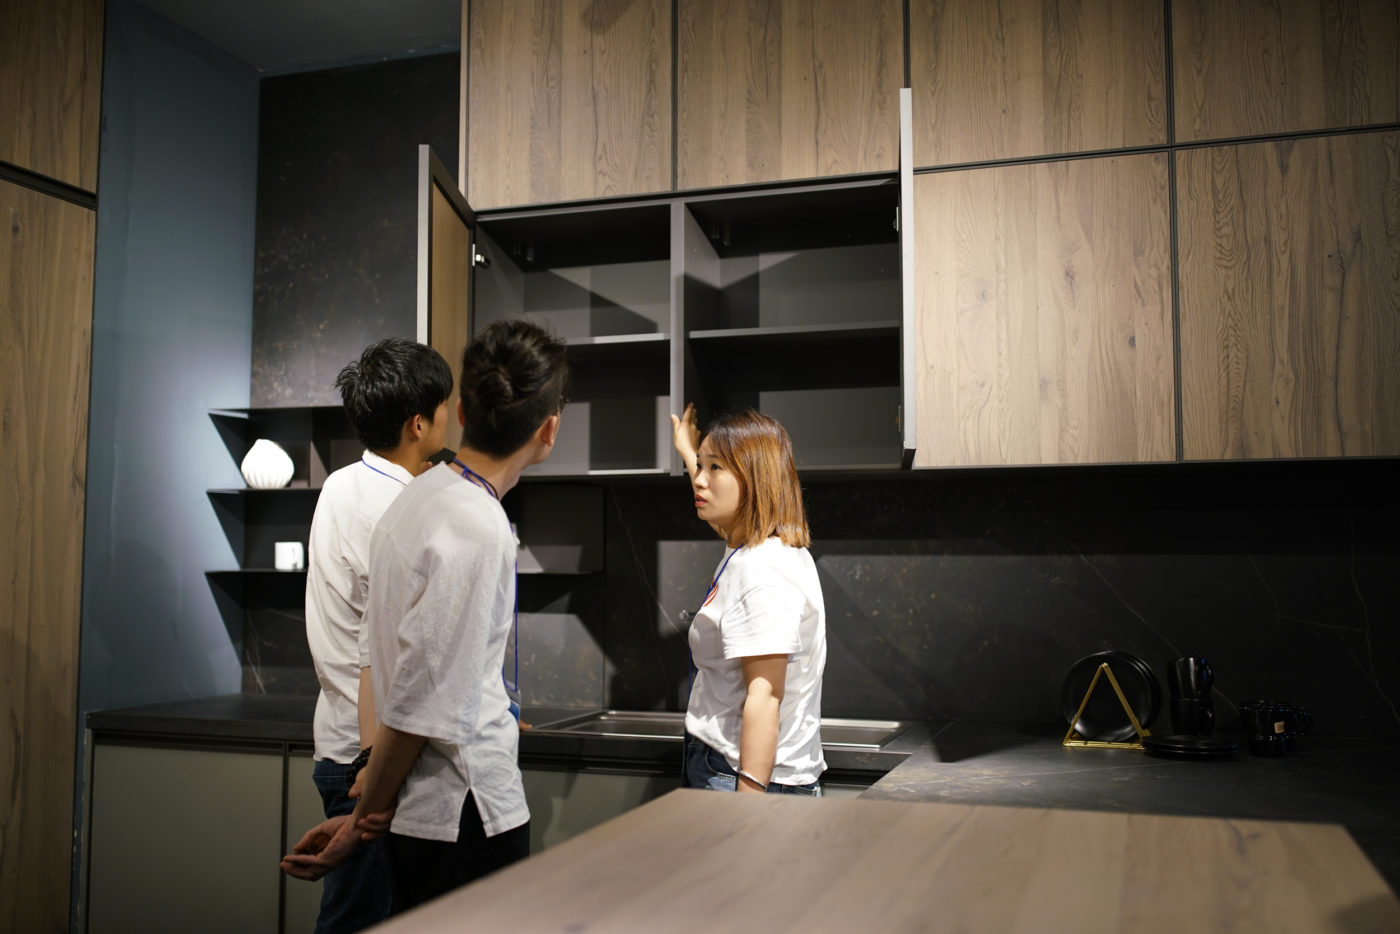 Grand succès pour Arredo3 au Kitchen & Bath 2019 Chine - 7